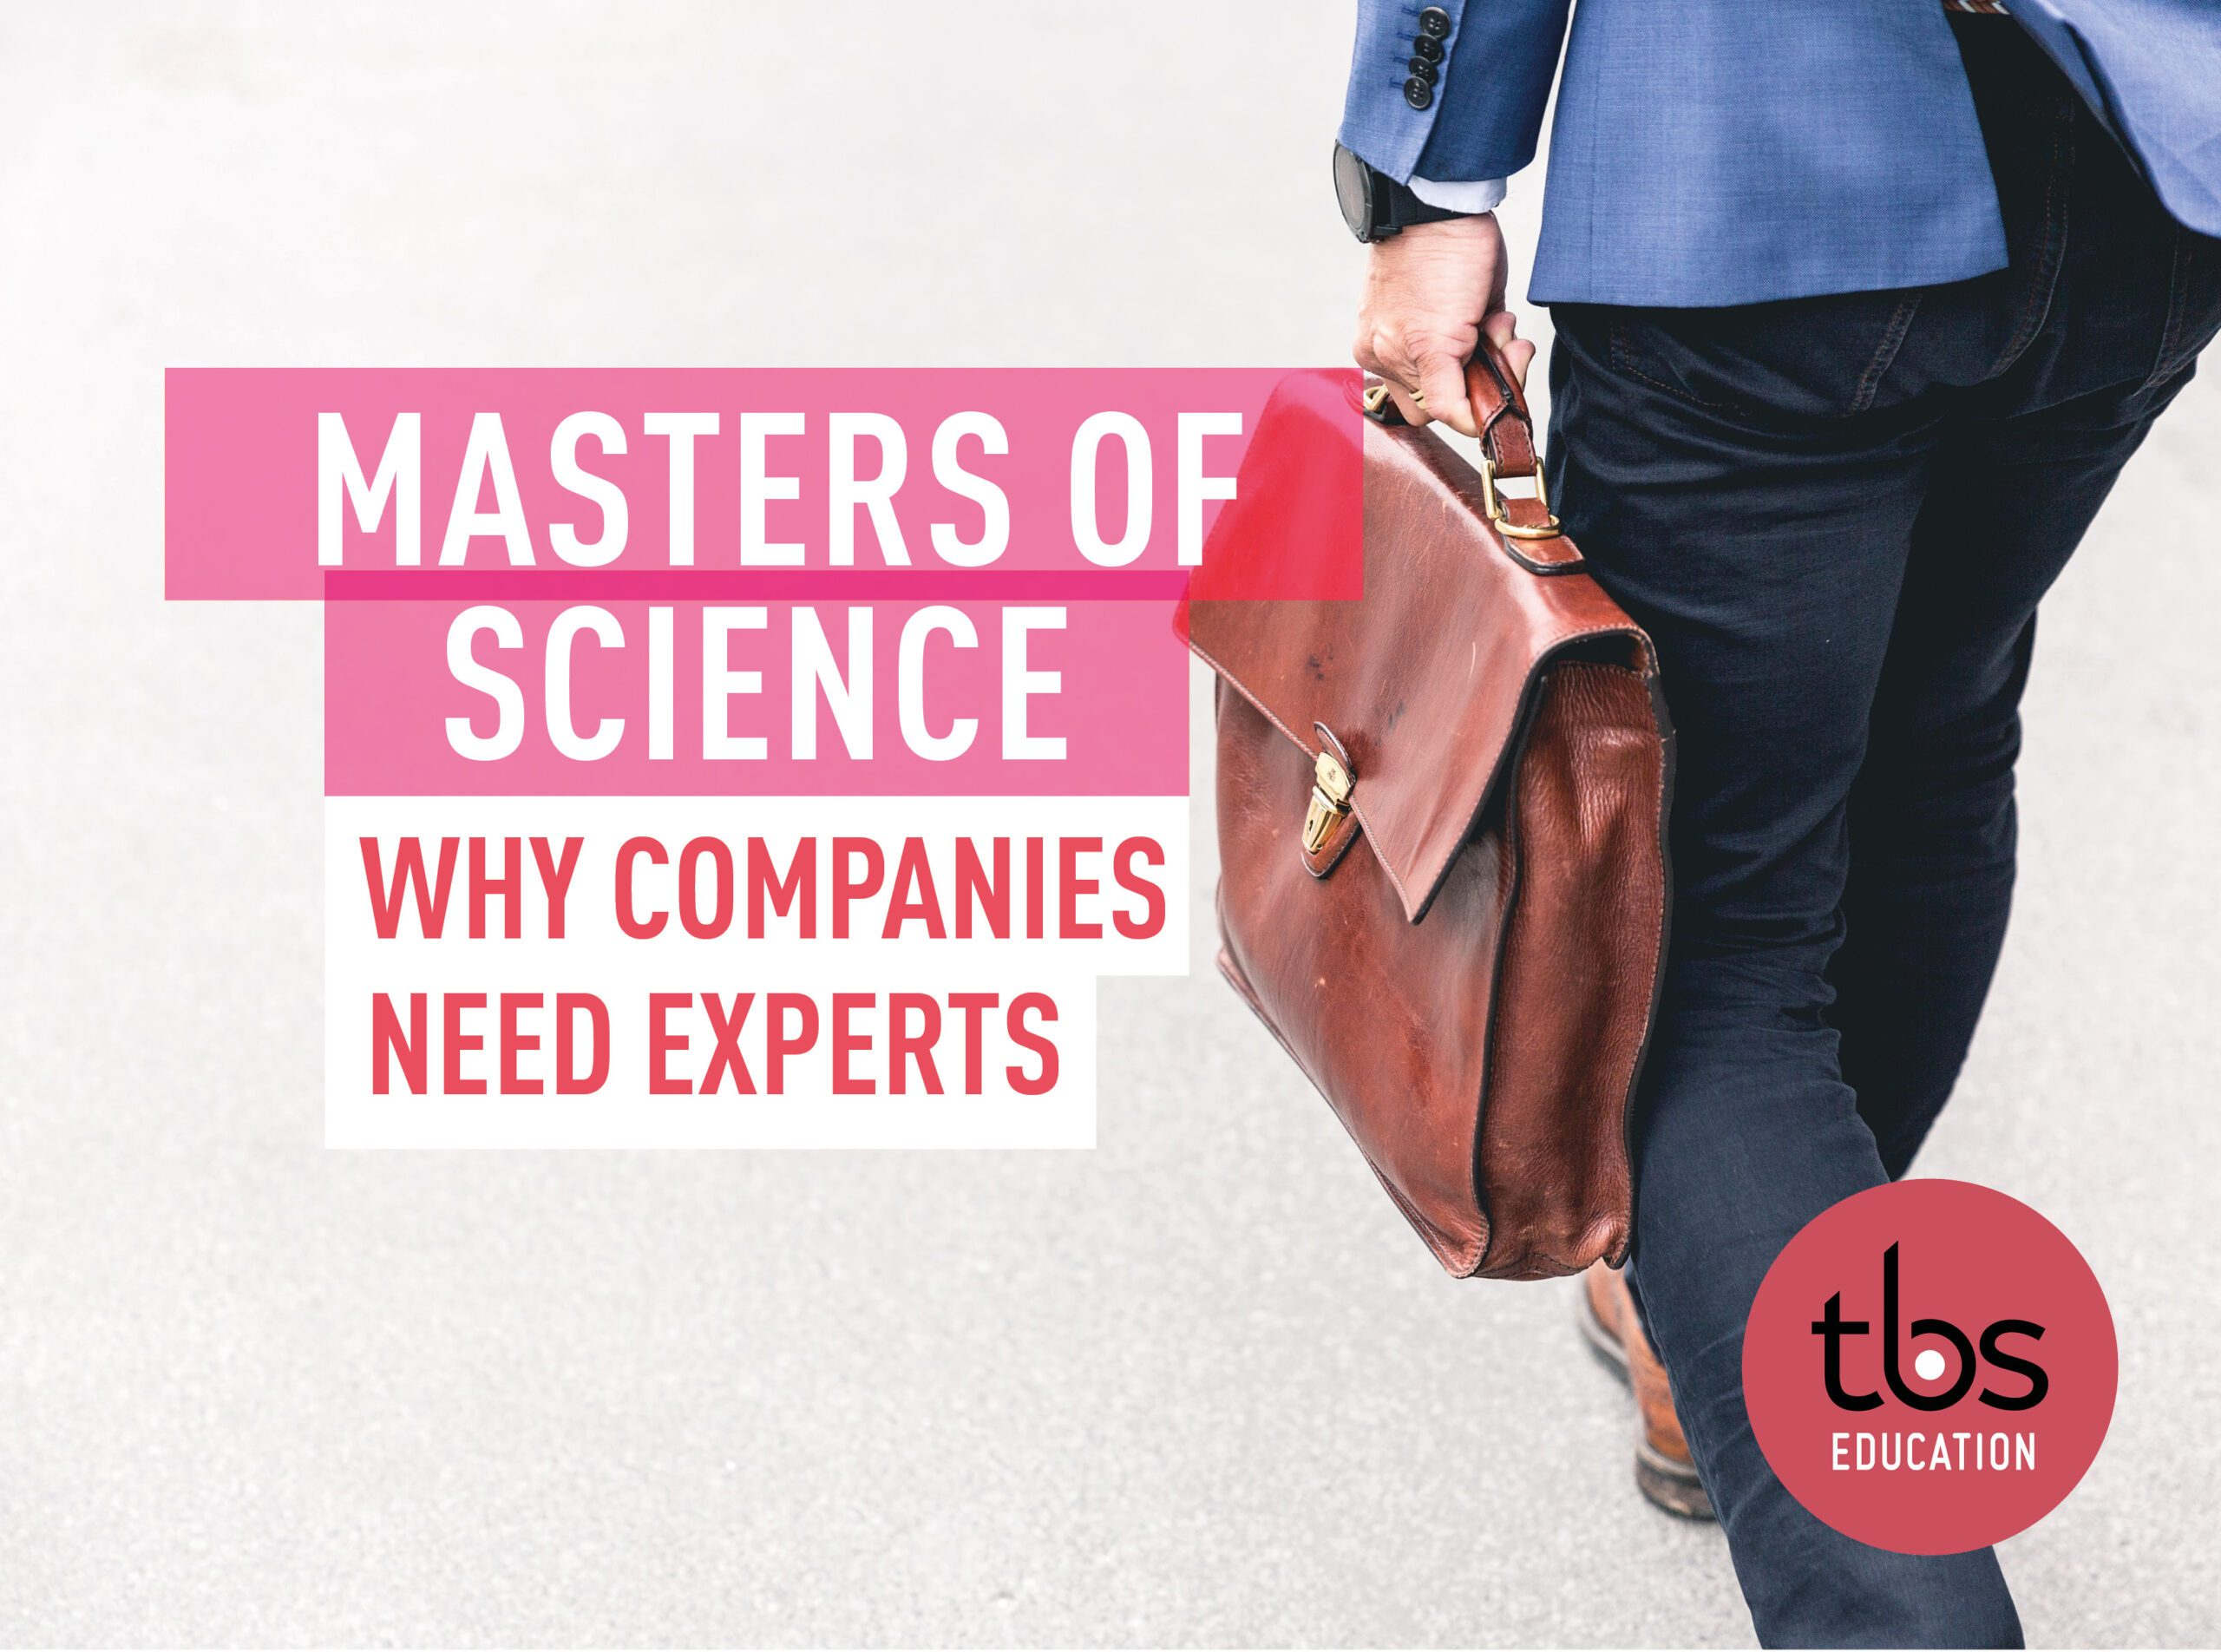 Msc Why Companies Need Experts 780 580